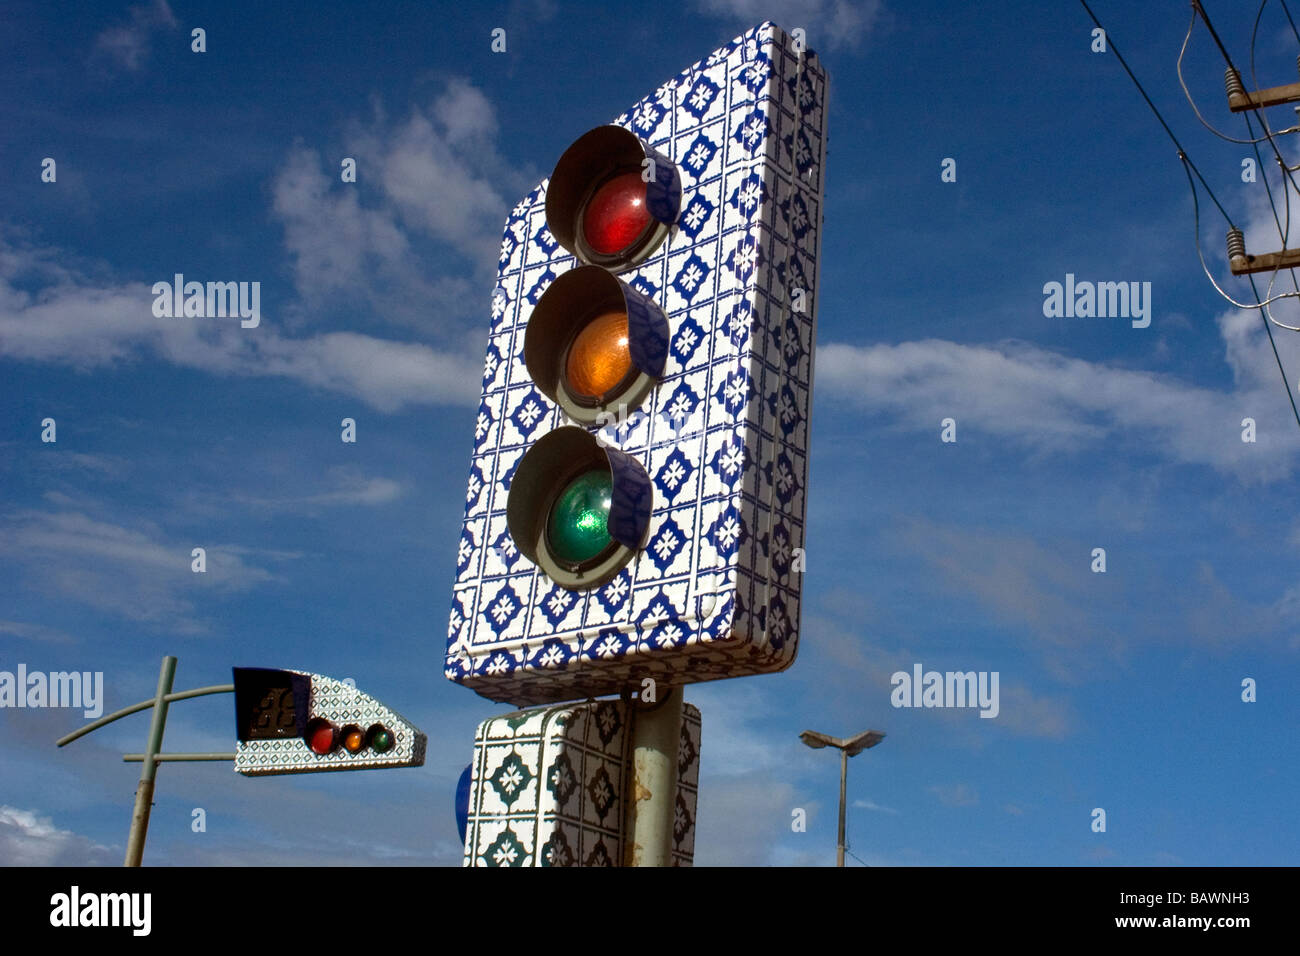 Traffic light made in the traditional Portuguese blue tiles style from the 17th century Sao Luis Maranhao Brazil - Stock Image